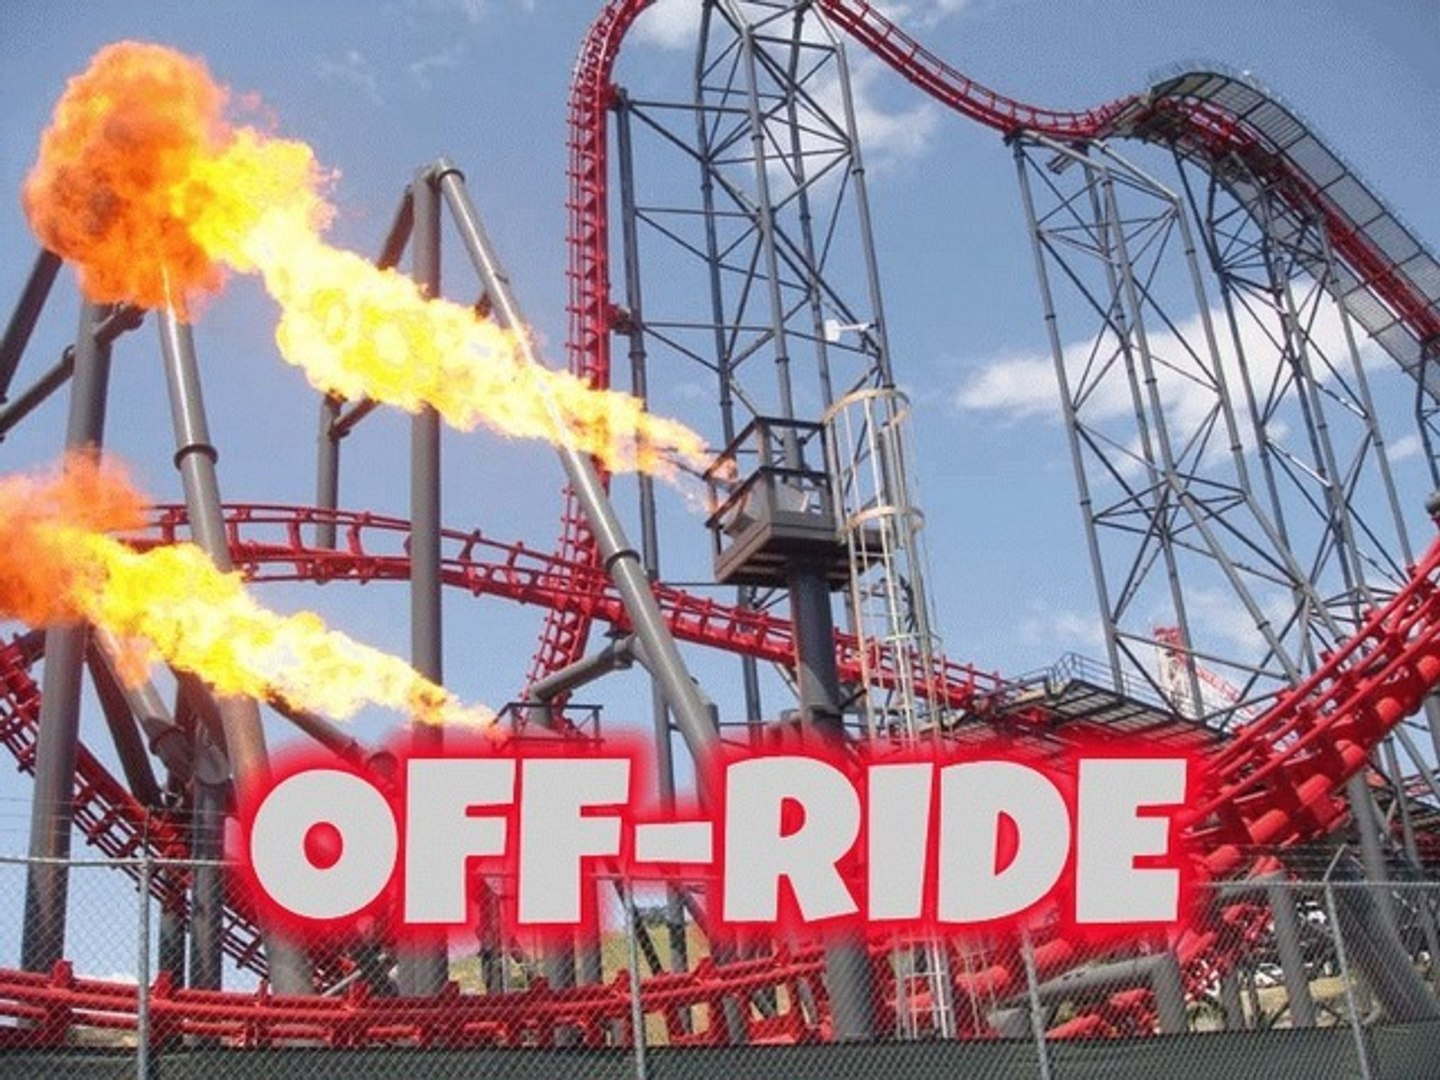 By the manual june 17, 2021. X2 Off Ride Hd Six Flags Magic Mountain Video Dailymotion